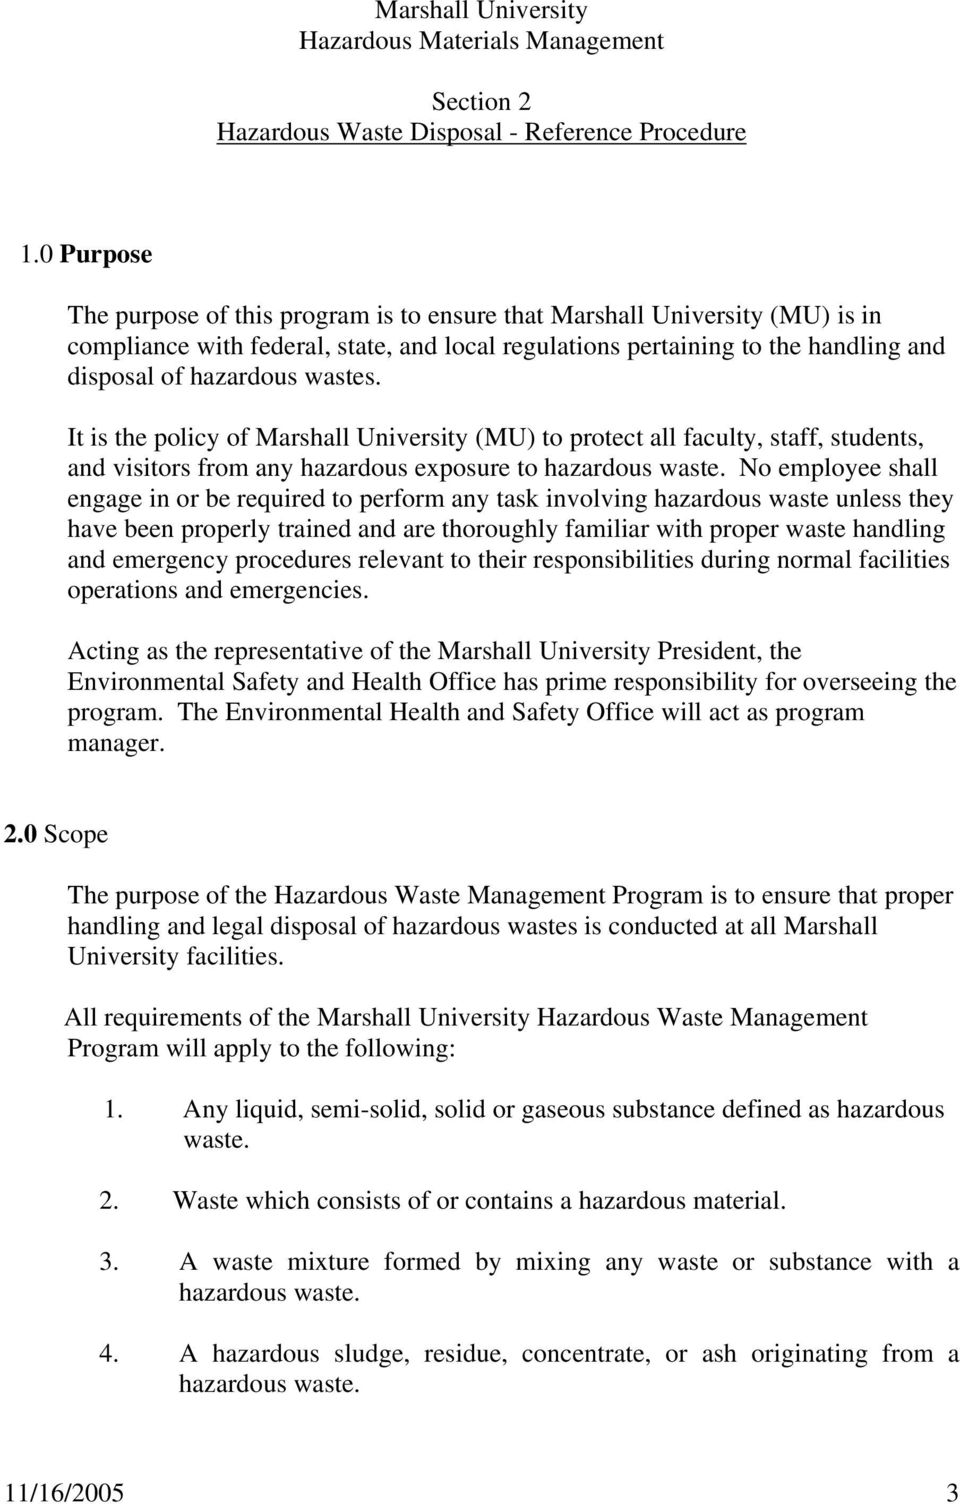 wastes. It is the policy of Marshall University (MU) to protect all faculty, staff, students, and visitors from any hazardous exposure to hazardous waste.